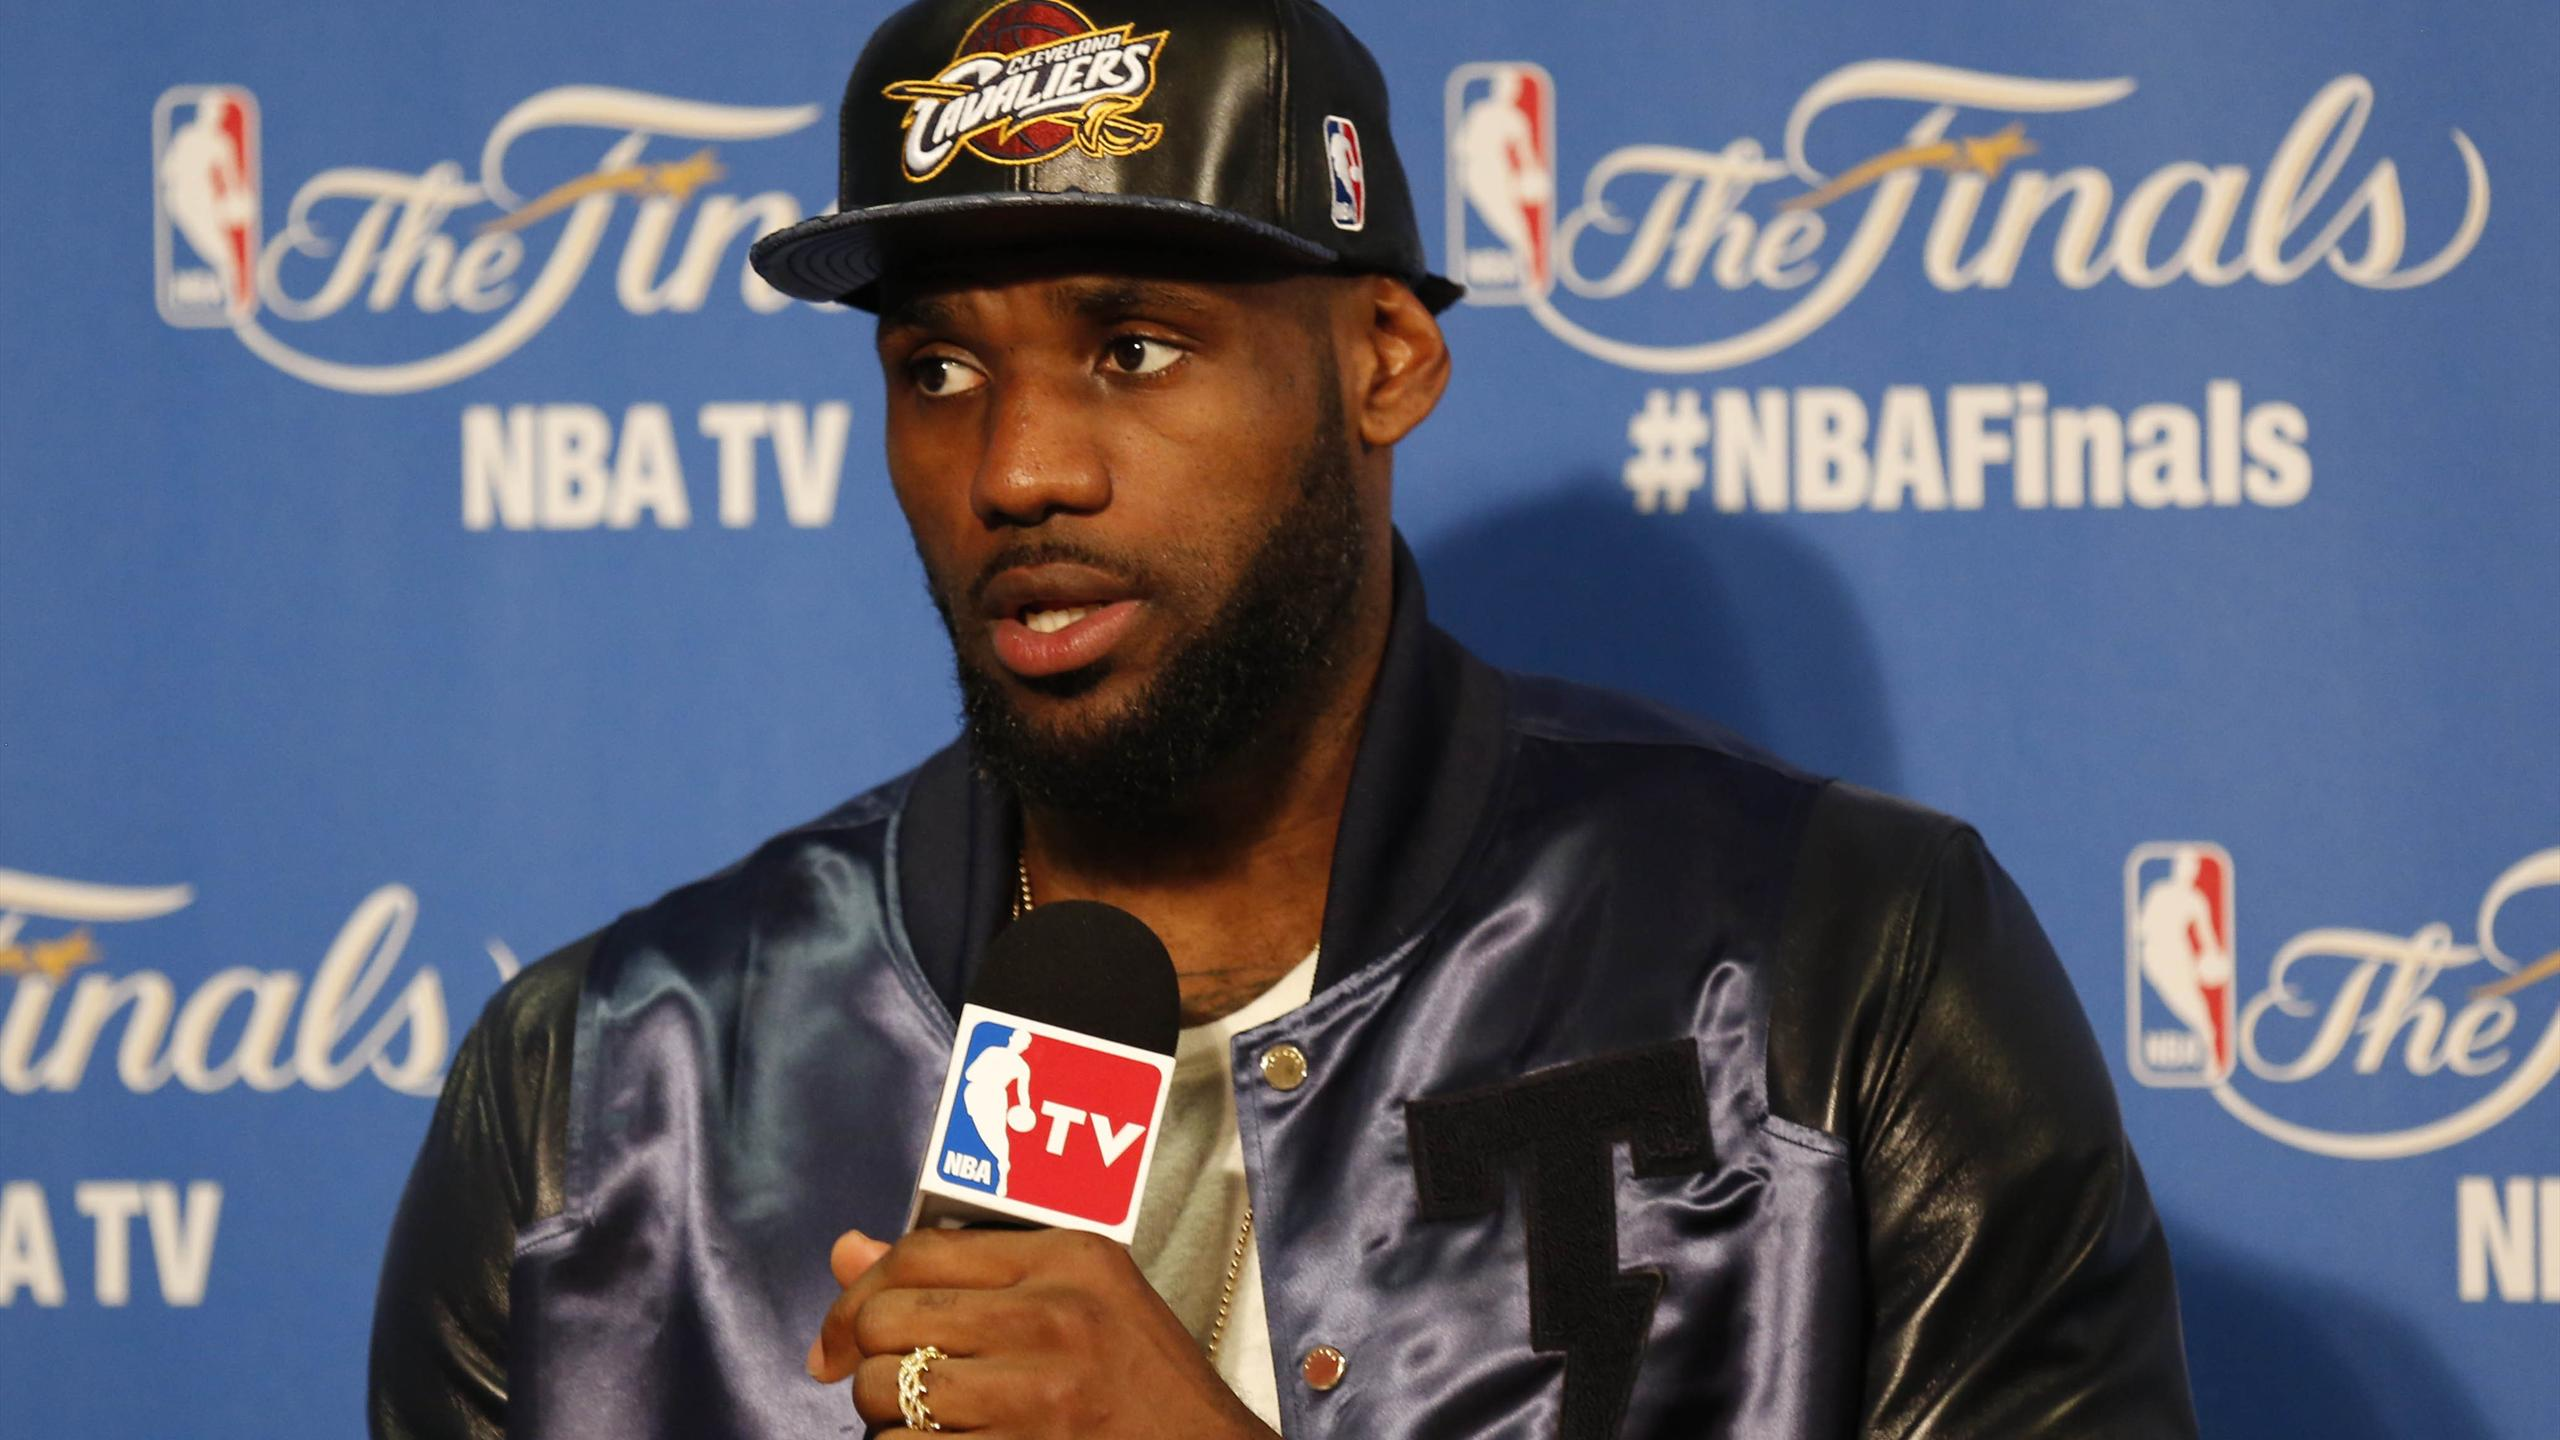 Cleveland Cavaliers forward LeBron James speaks to media following the 104-91 loss against the Golden State Warriors in game five of the NBA Finals